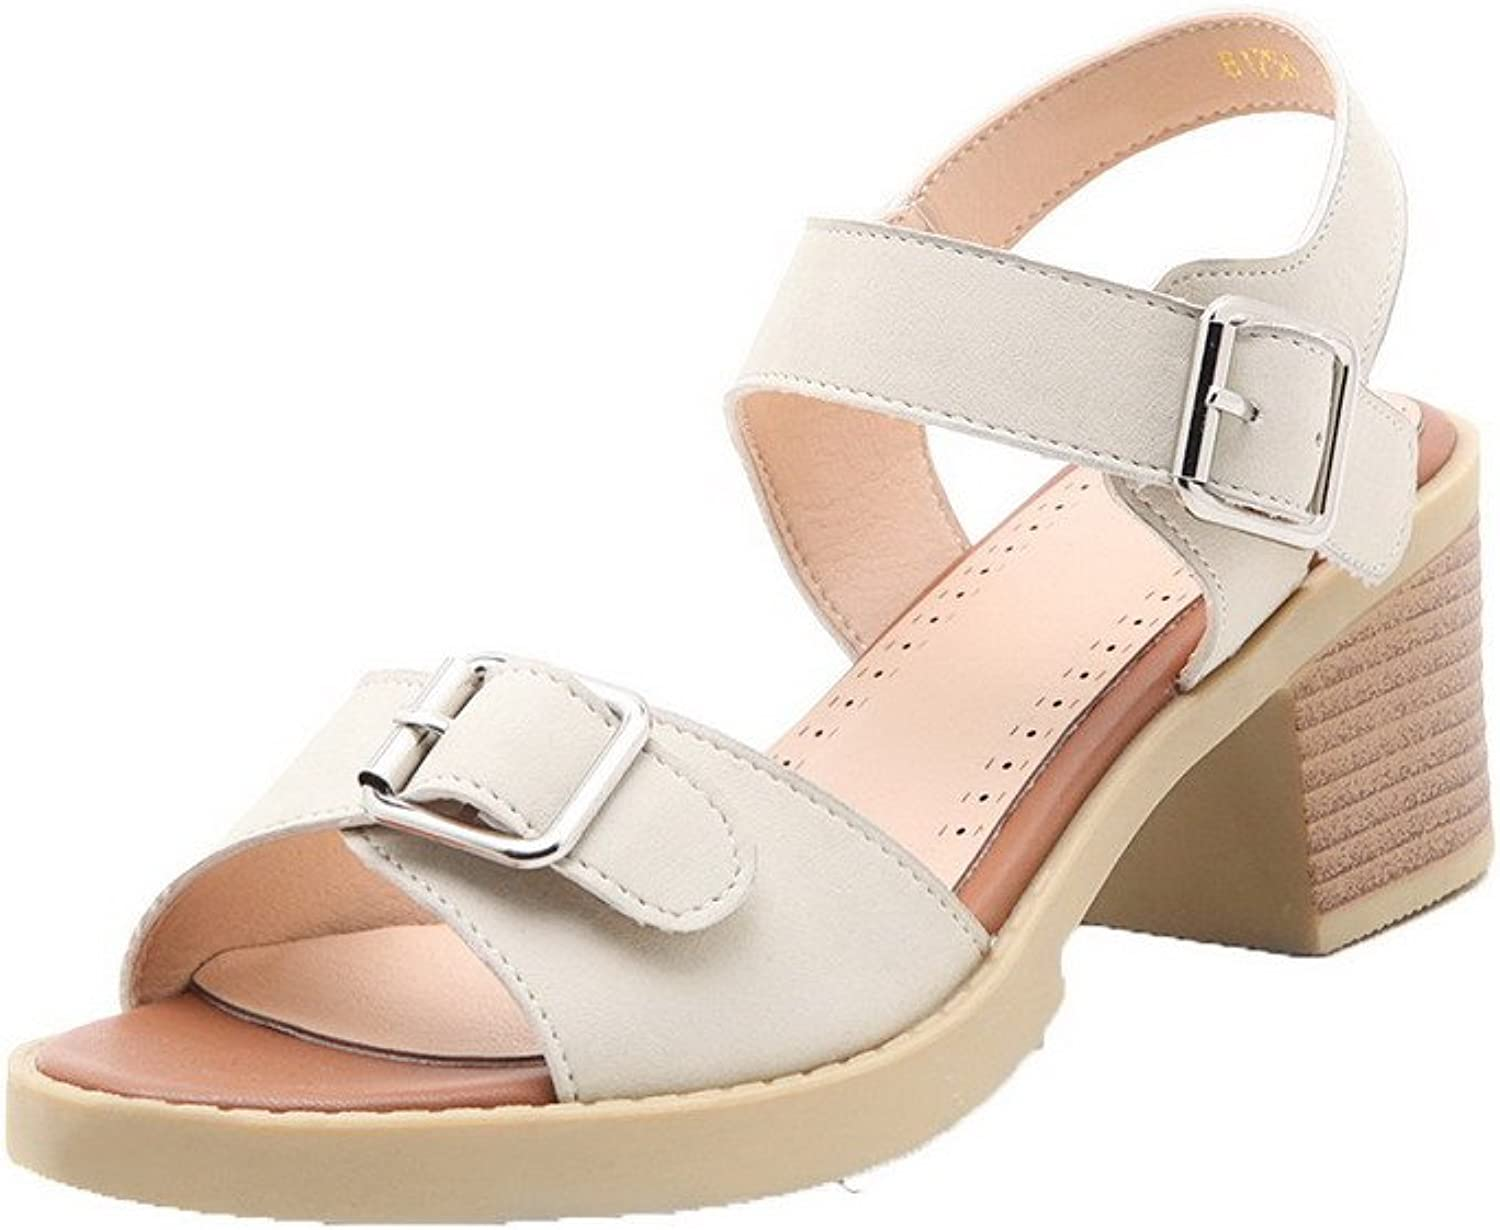 WeenFashion Women's Open-Toe Kitten-Heels Soft Material Solid Buckle Sandals